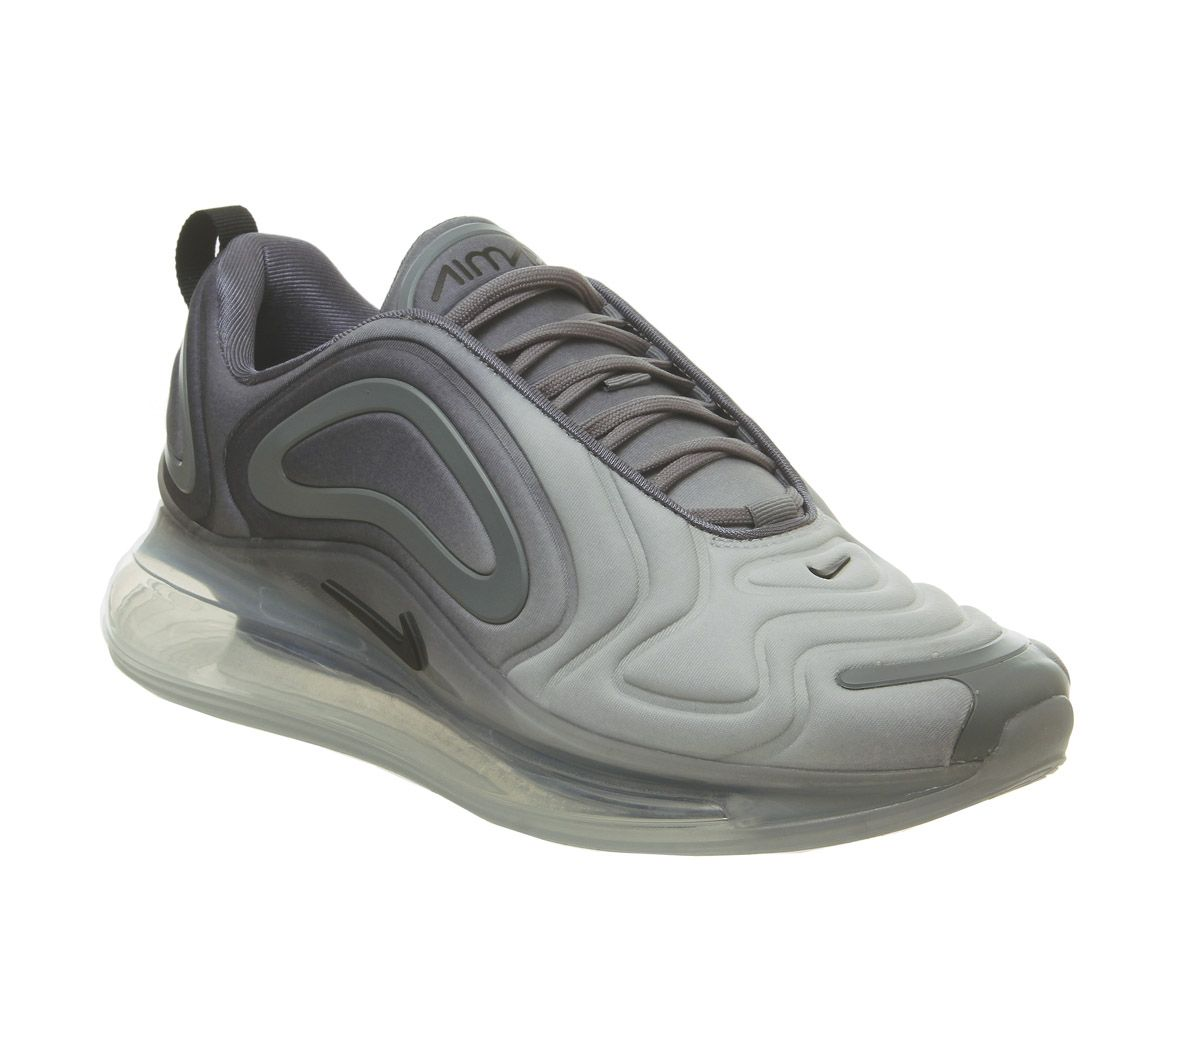 new arrival b774b 5adcc More Colours (21). More Colours (21). Air Max 720 Trainers